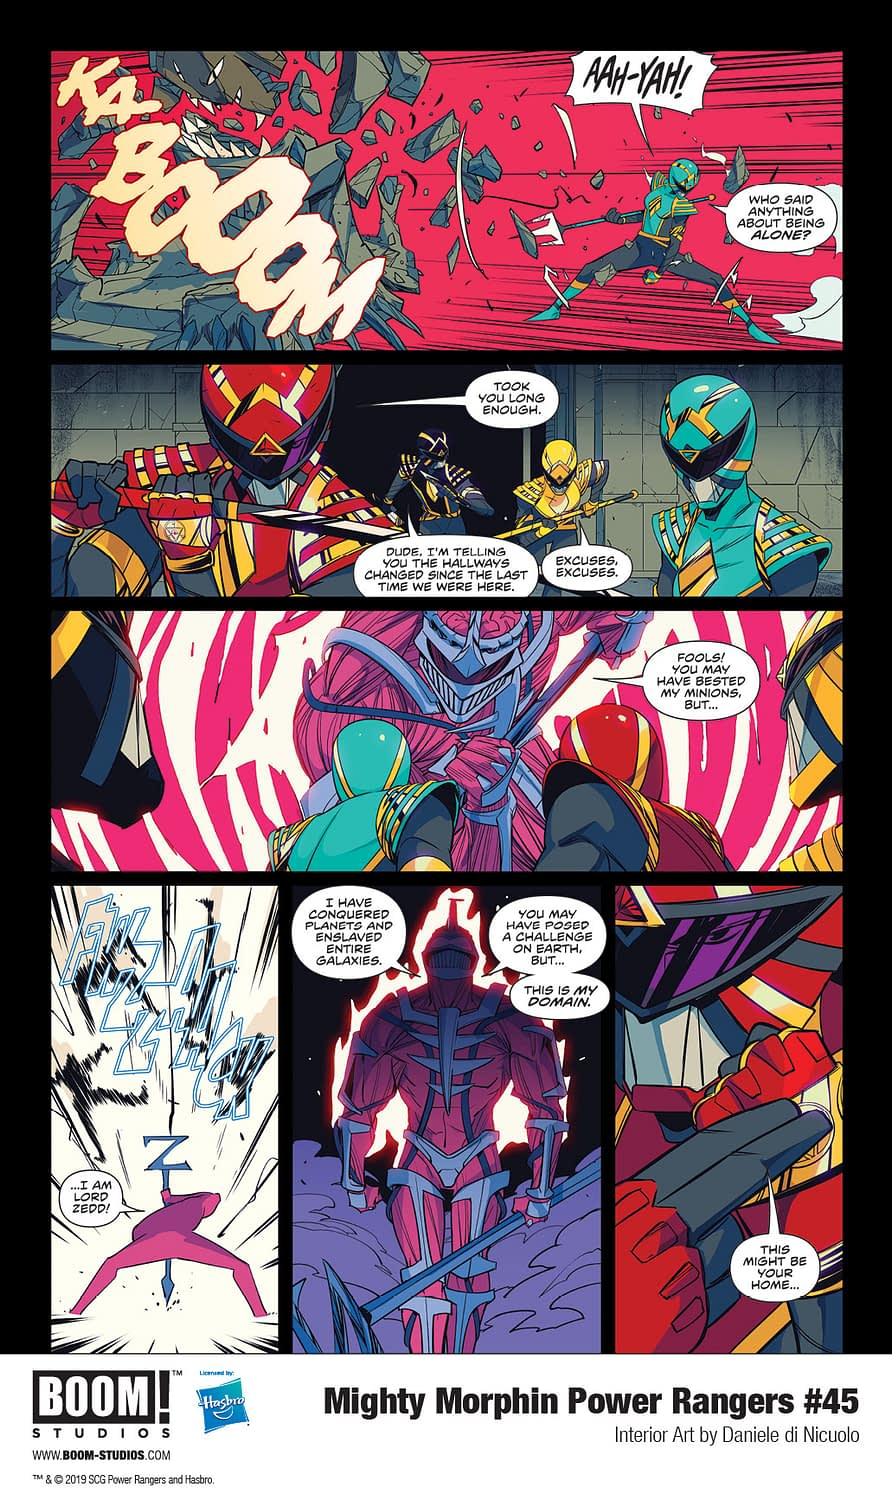 Power Rangers to Be Changed Forever in Shocking Mighty Morphin Power Rangers #45 [Preview]